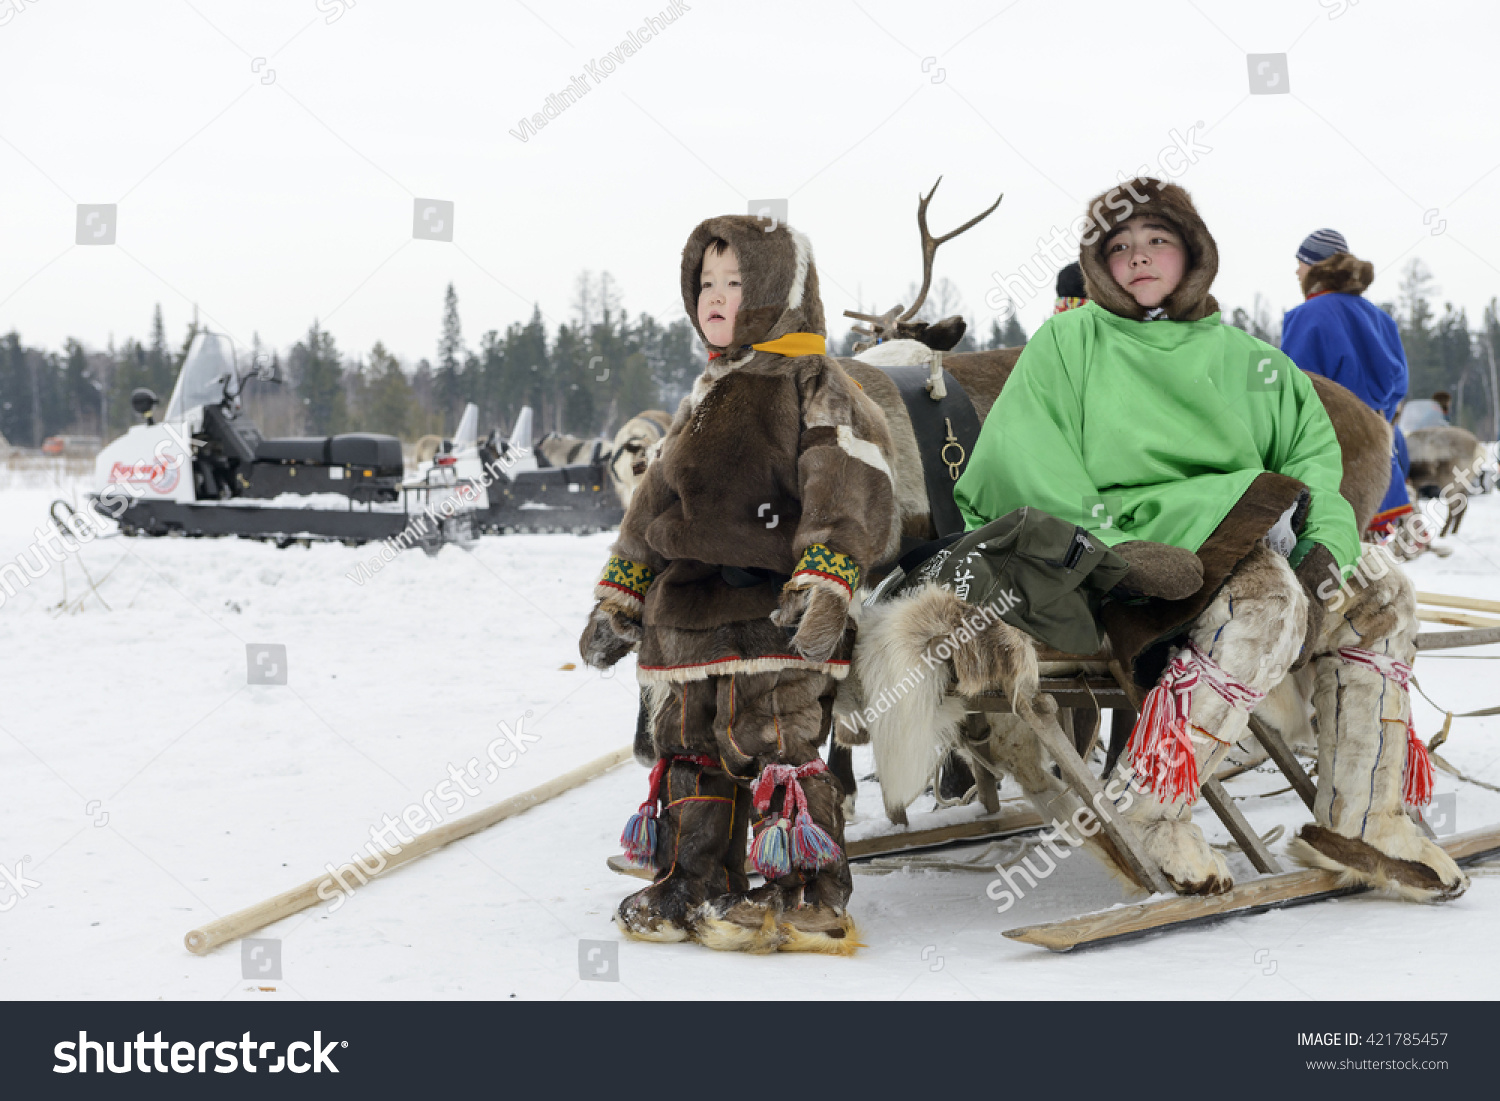 nenets children yamal peninsula - photo #12